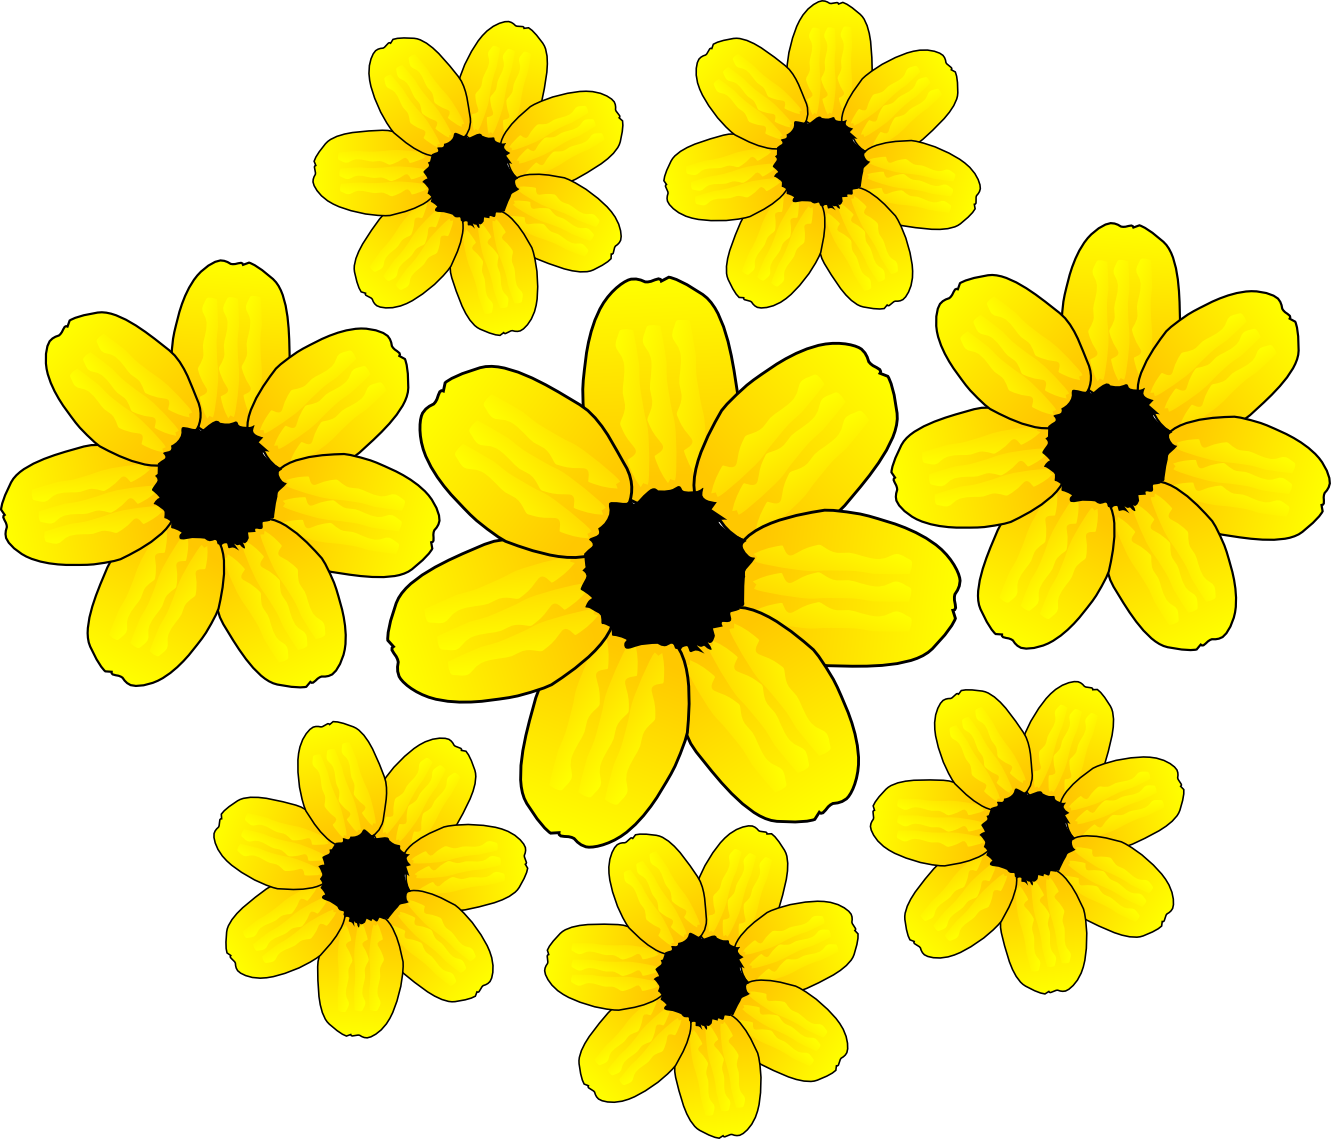 Yellow Flower Clip Art - ClipArt Best | -Yellow Flower Clip Art - ClipArt Best | clip art...gmk | Pinterest | The 3, Graphics and Changu0026#39;e 3-8